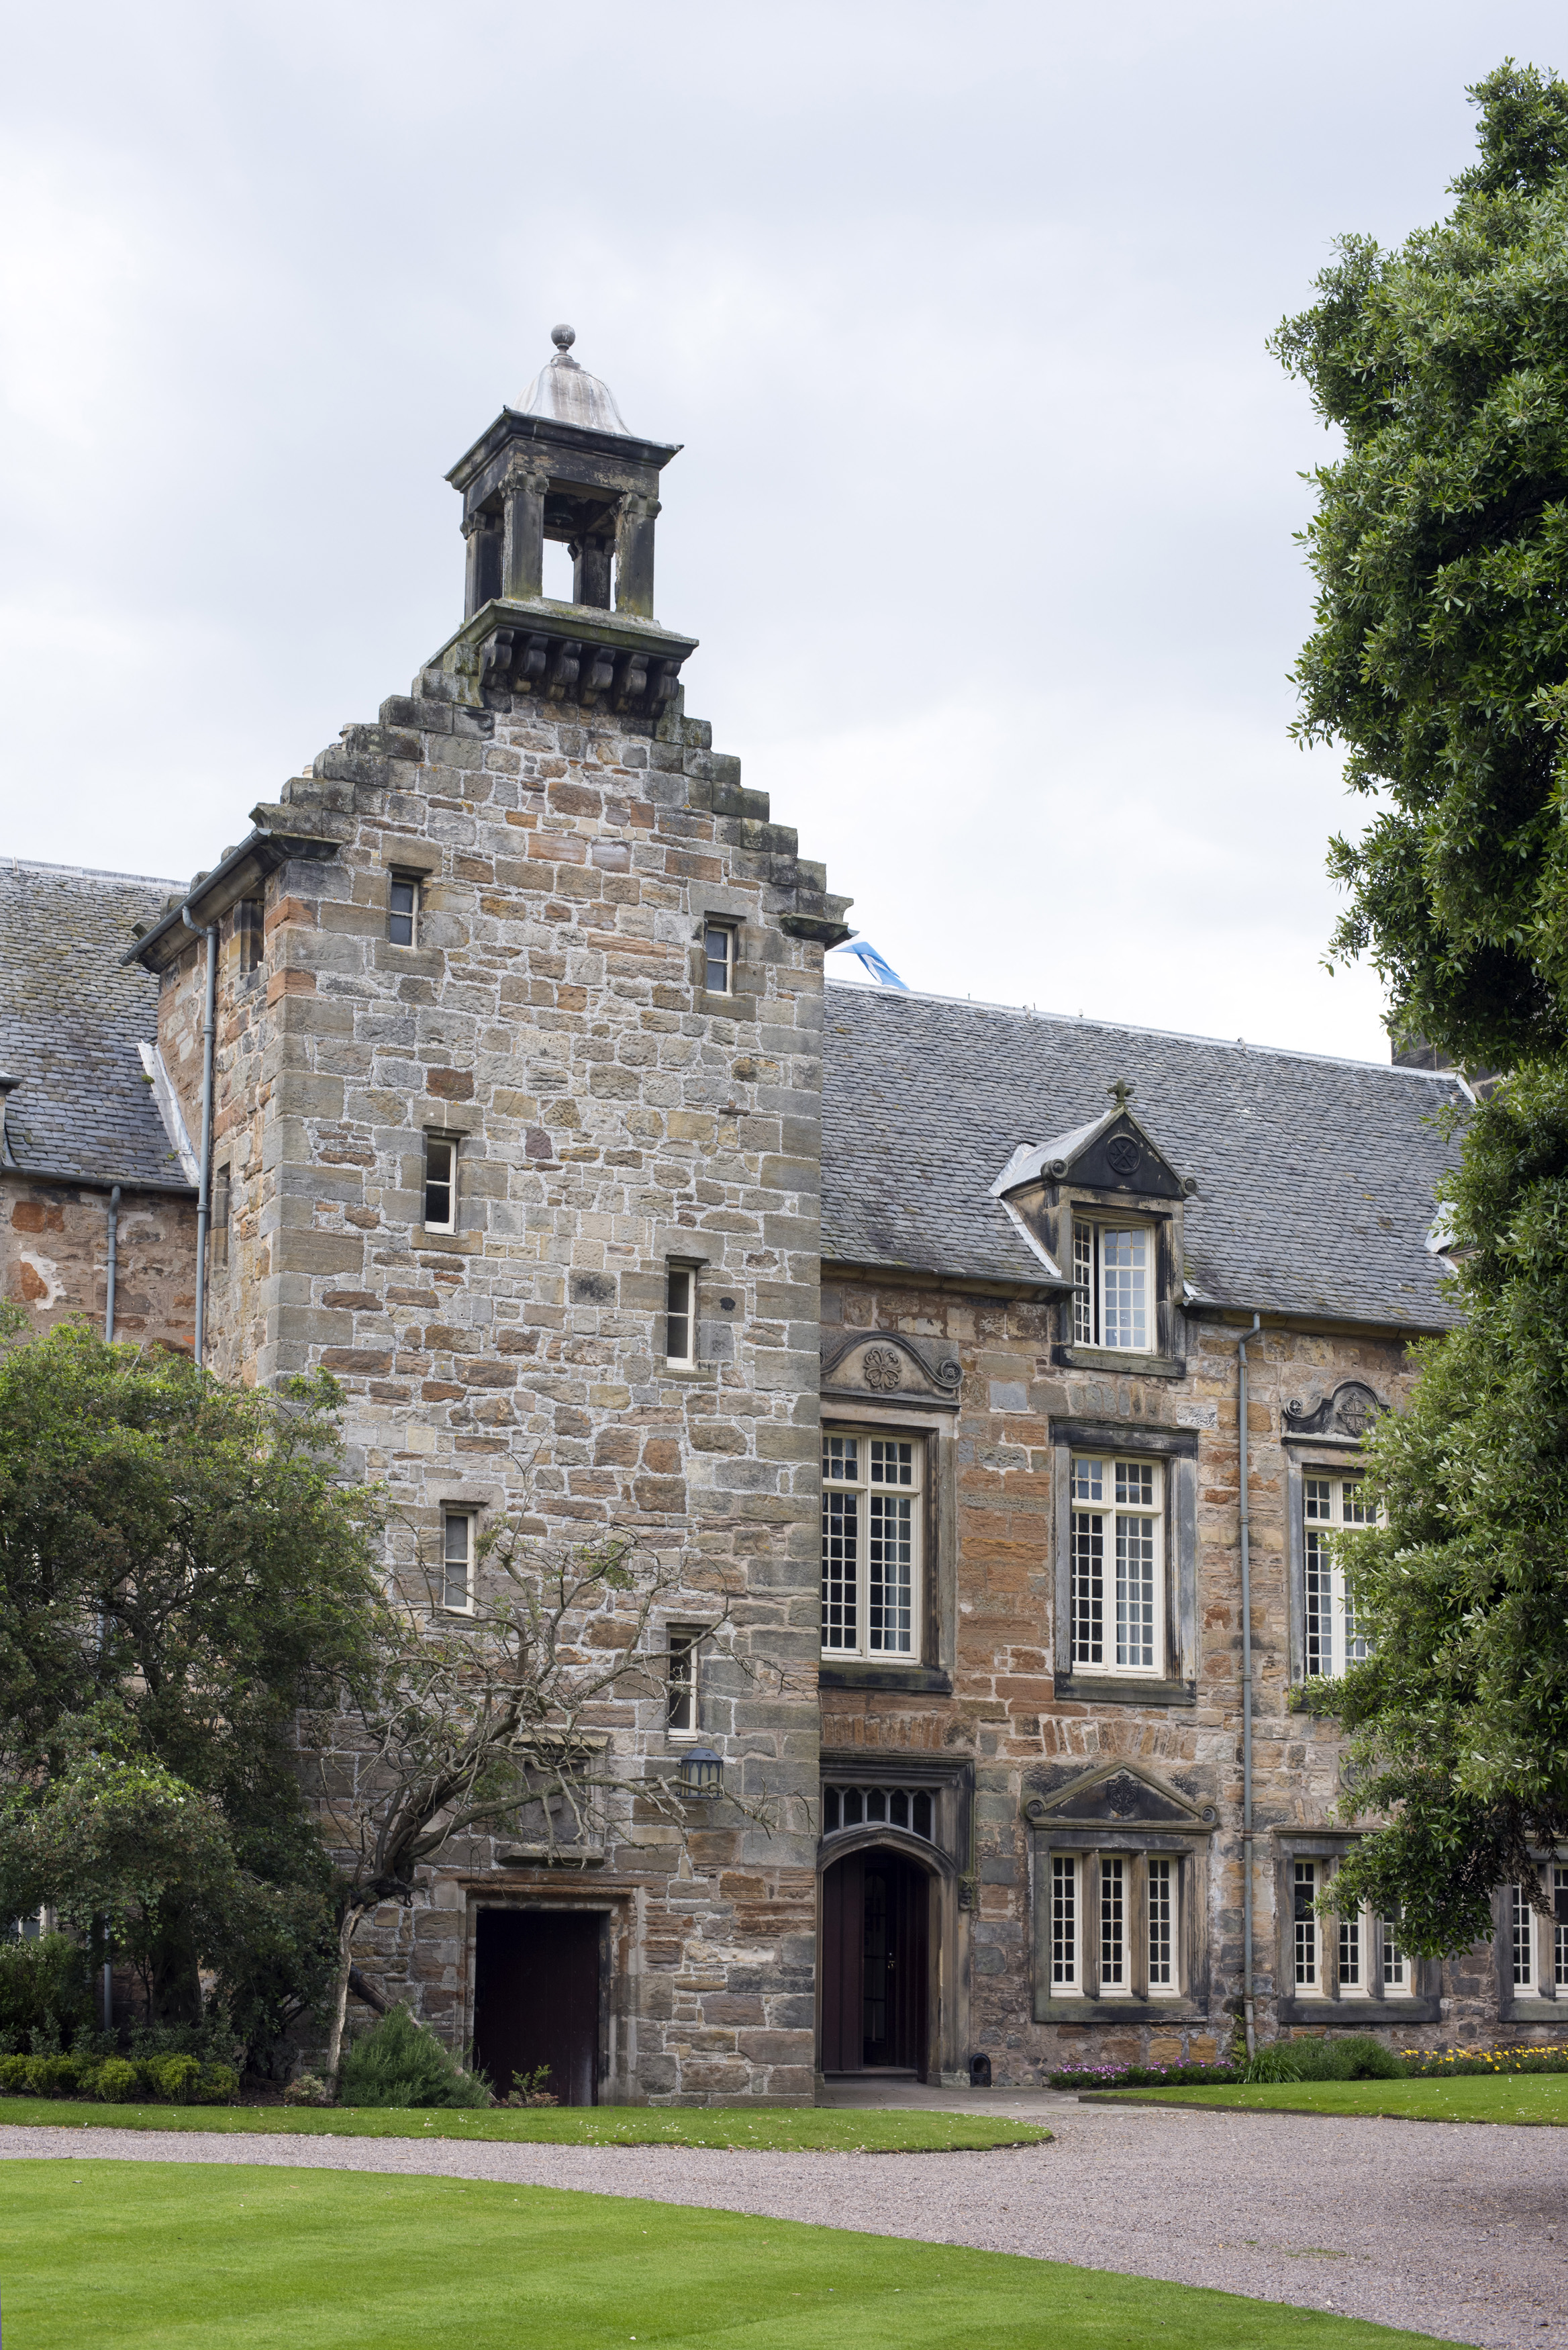 University of Saint Andrews with small windows and a bell tower above the entryway